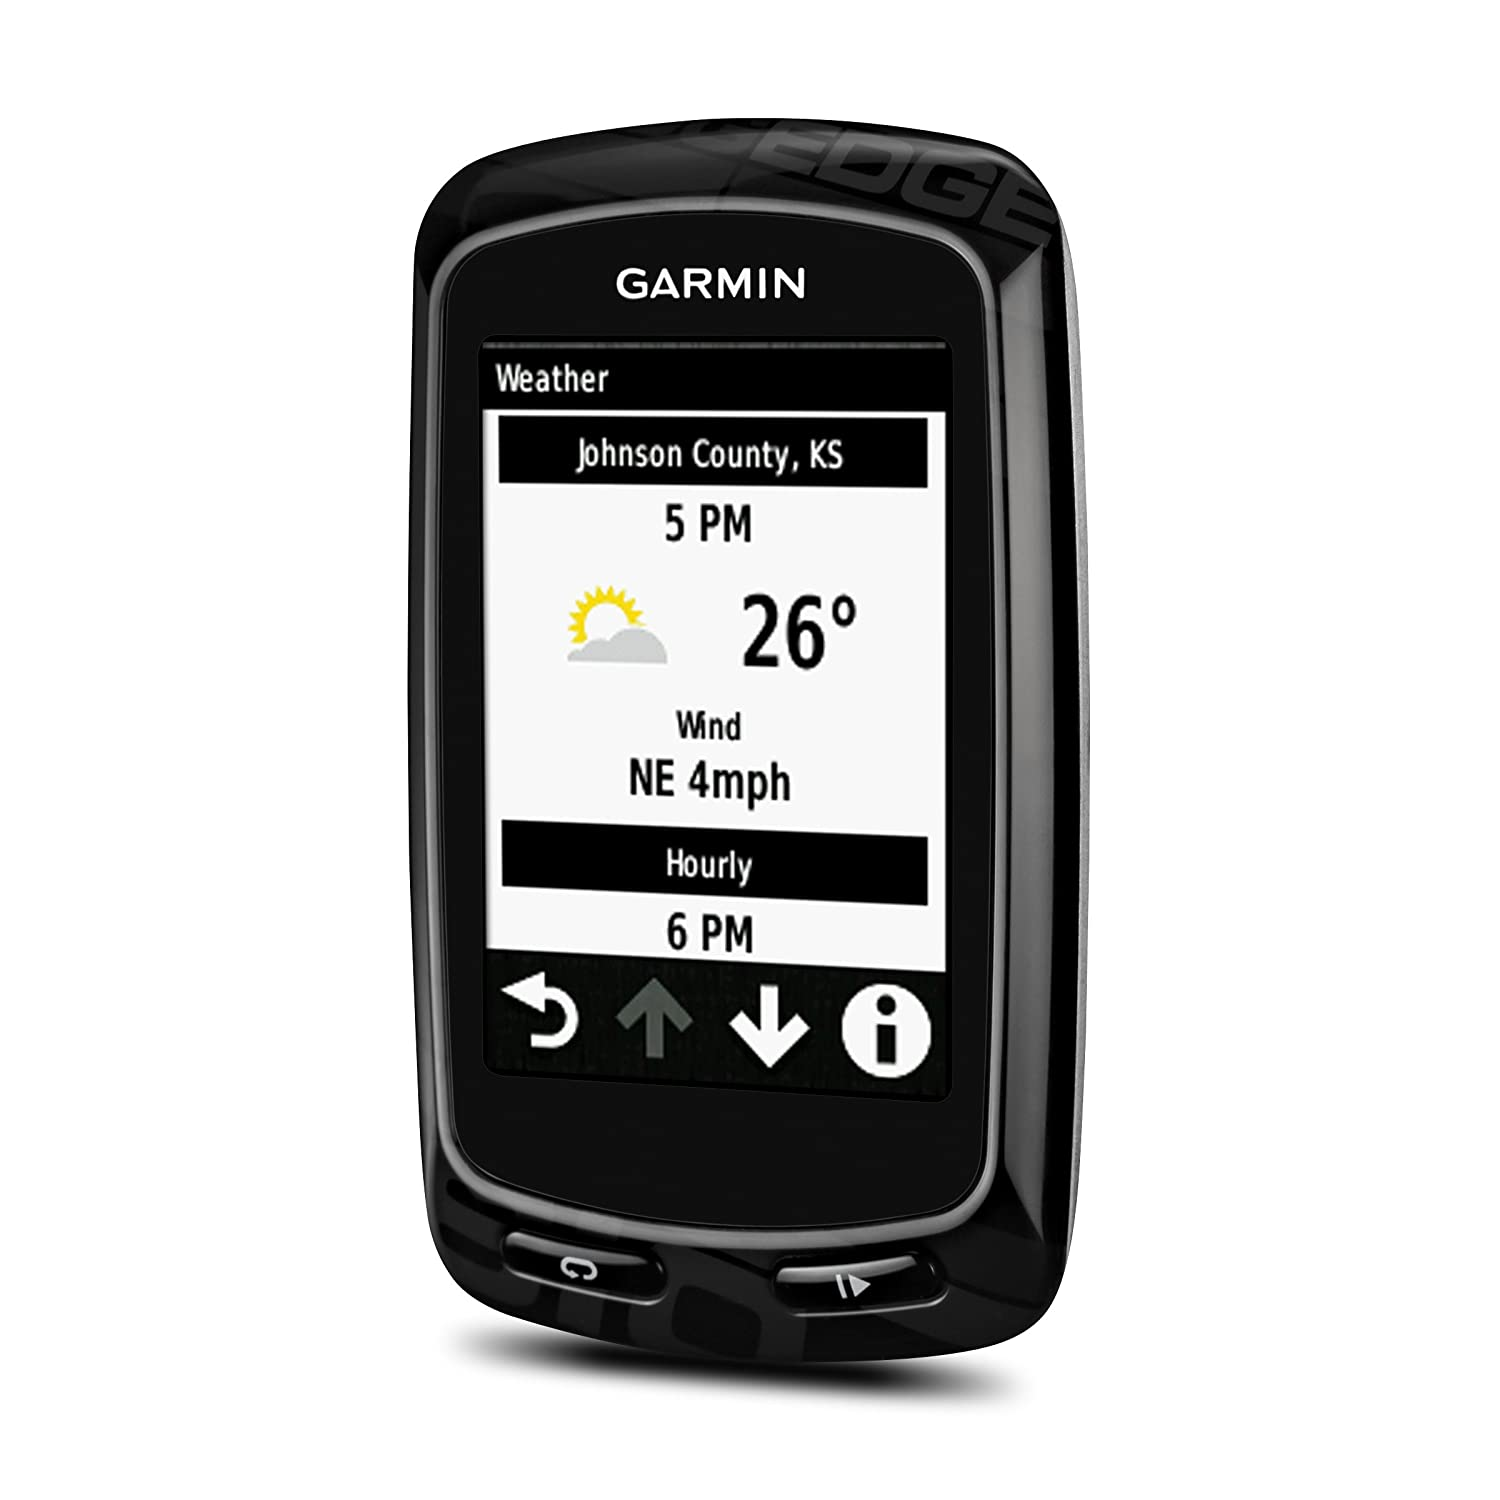 Dedicated Original Garmin Edge 800 Back Case Bottom Cover With Battery White/black Other Office Equipment Office Equipment & Supplies